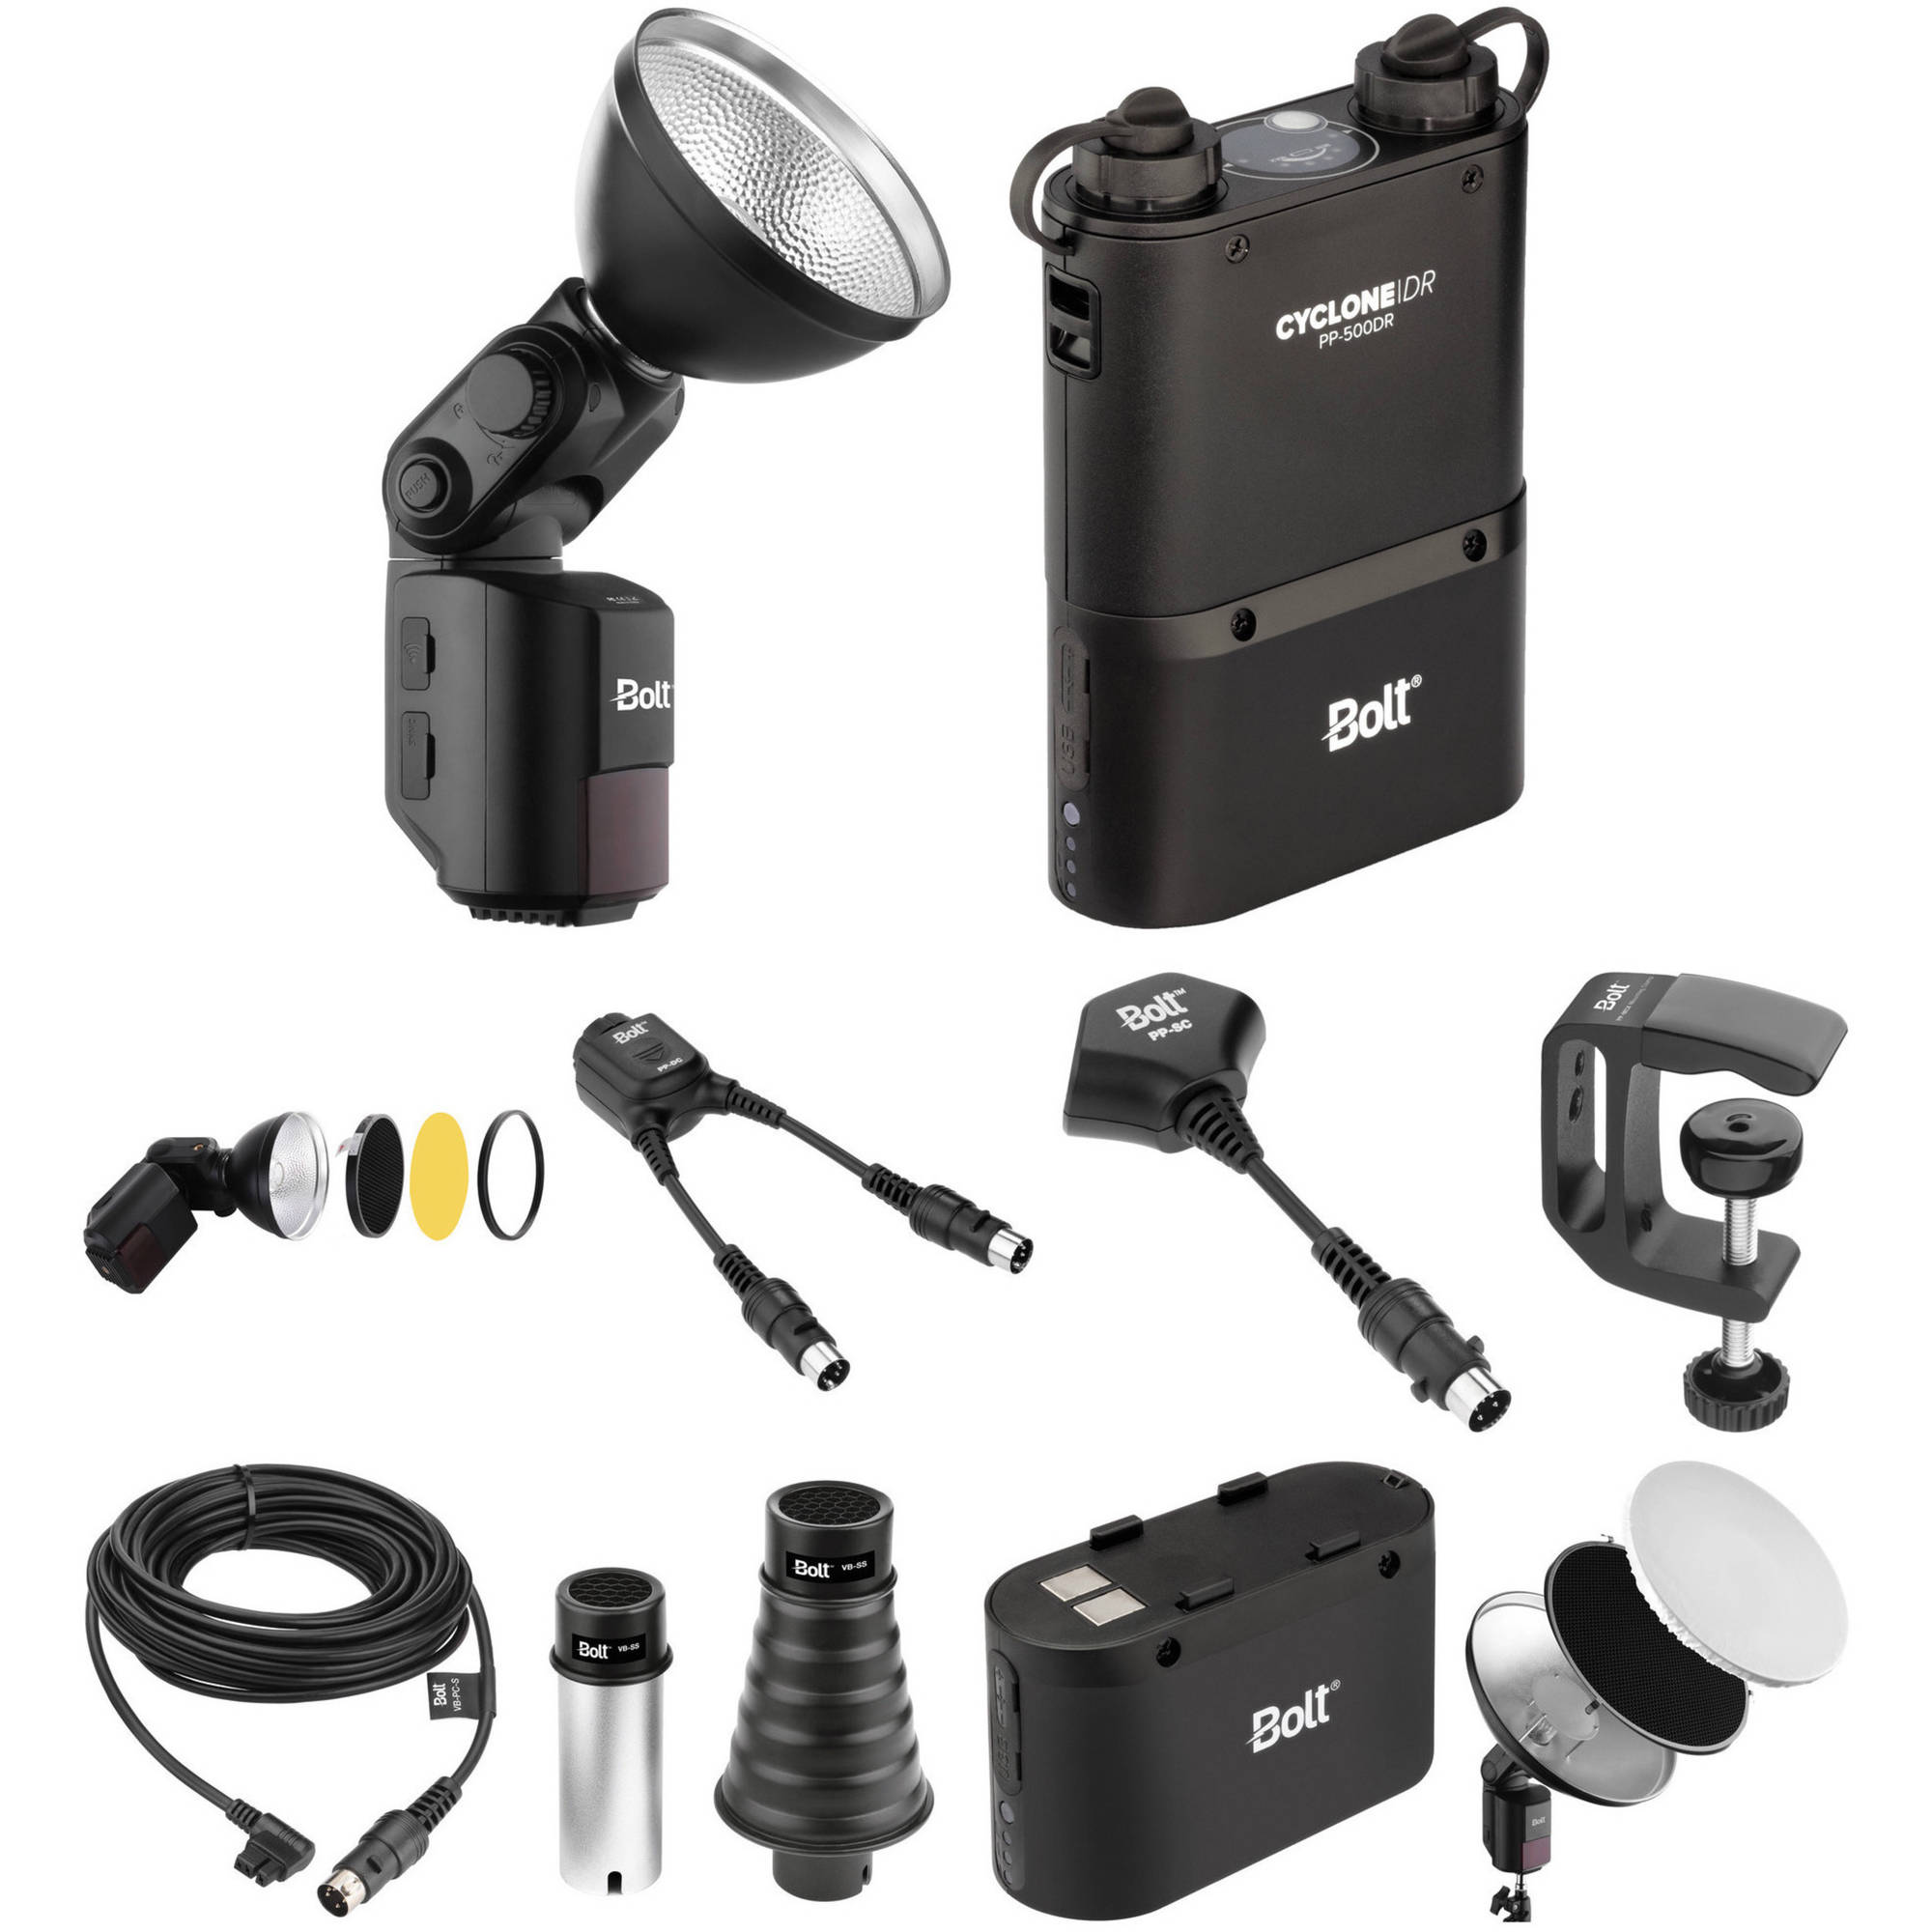 6 Pack Bolt Beauty Dish and Grid Kit for VB-Series Bare-Bulb Flashes